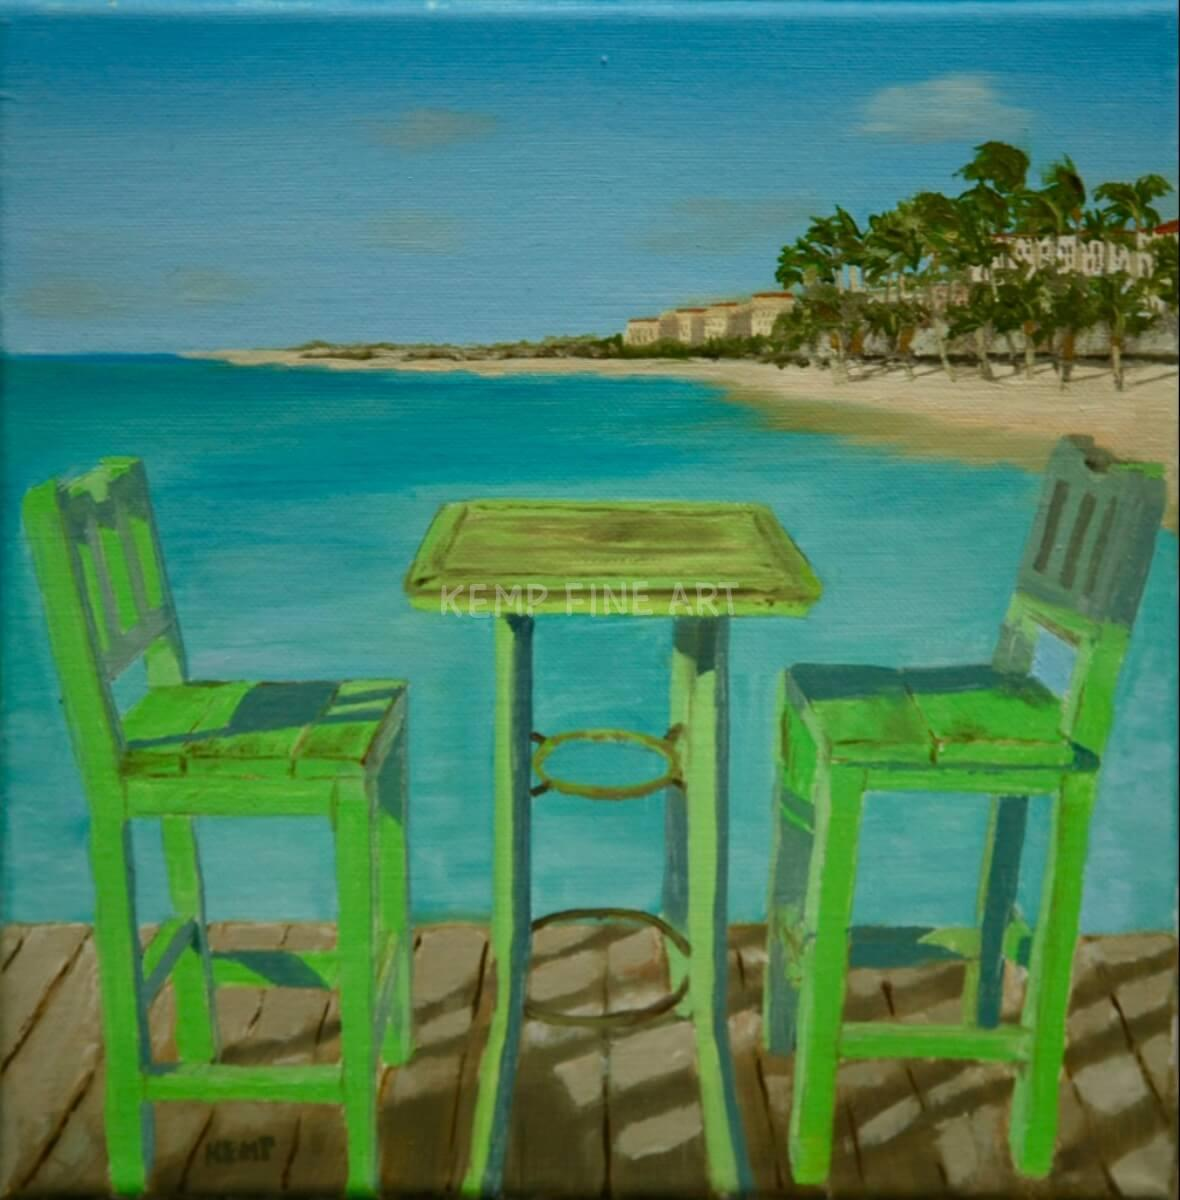 Two Tickets to Paradise | Oil on Canvas - by Jim Kemp